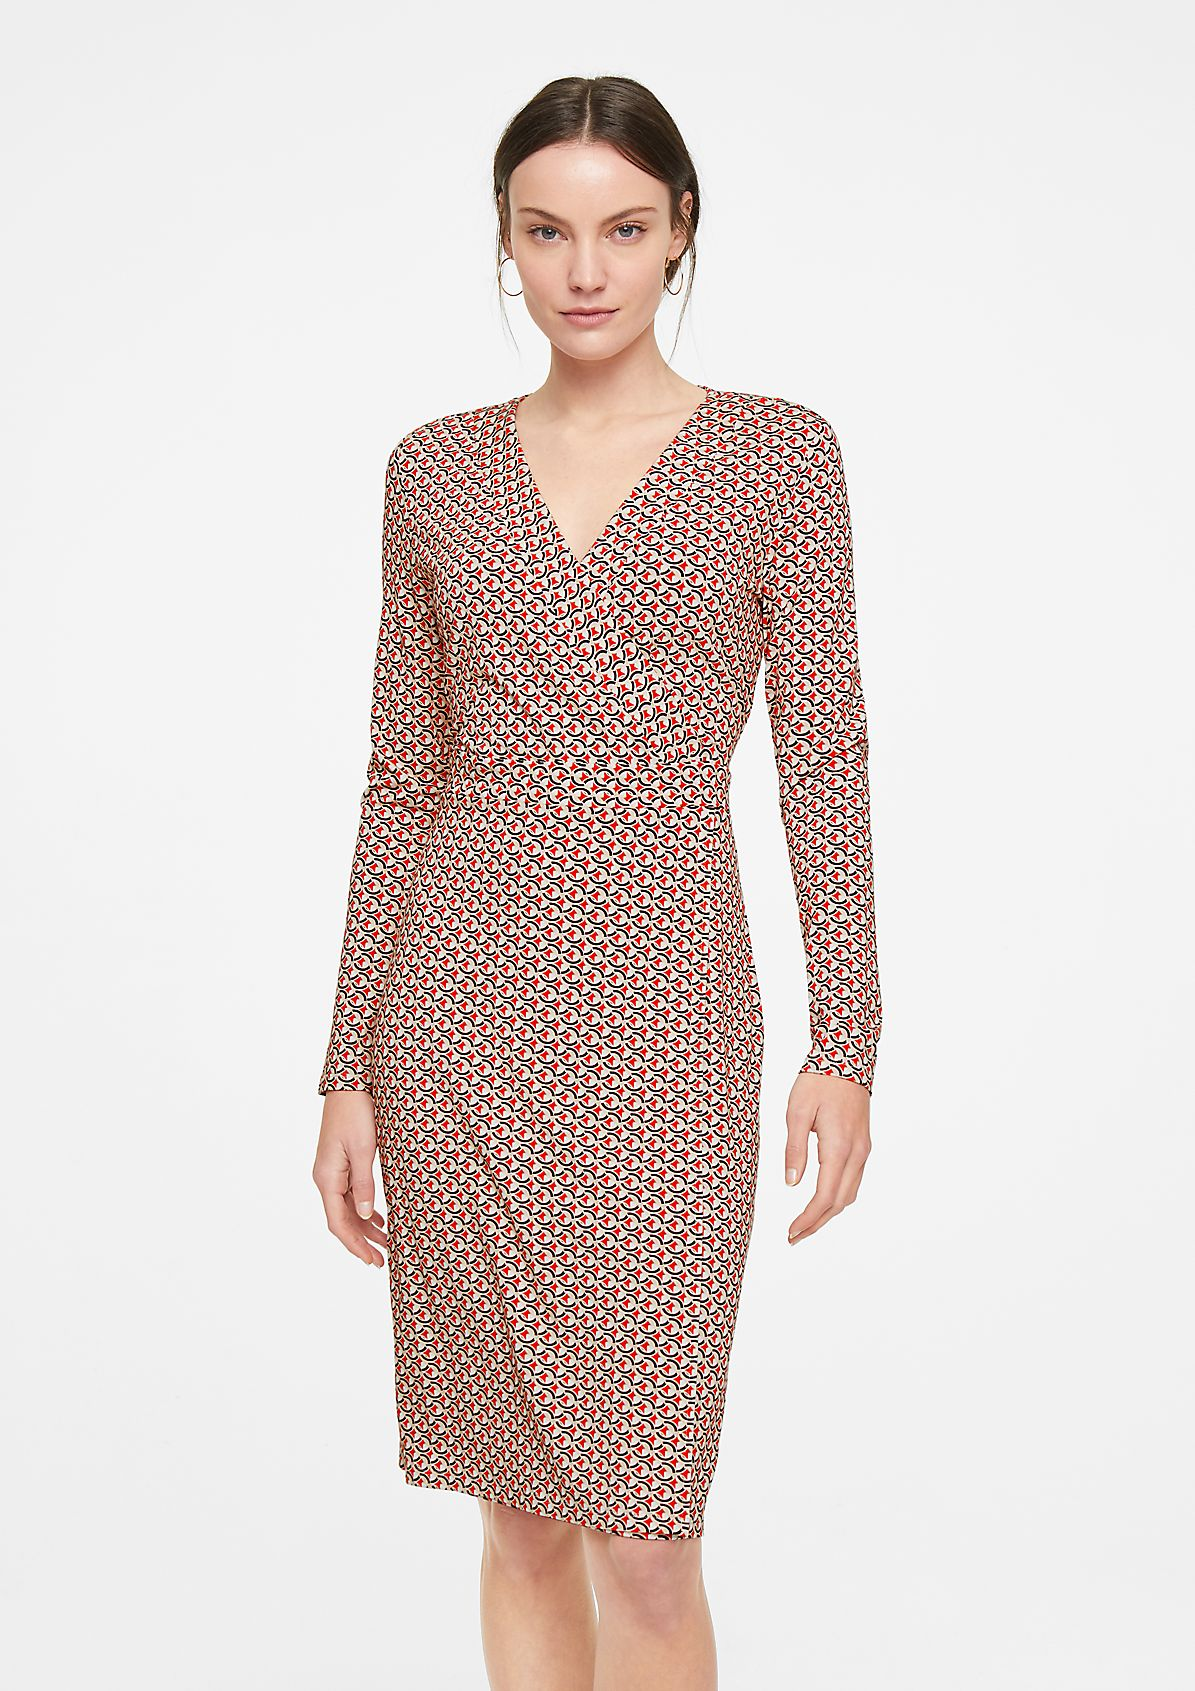 Dress with a cache coeur neckline from comma